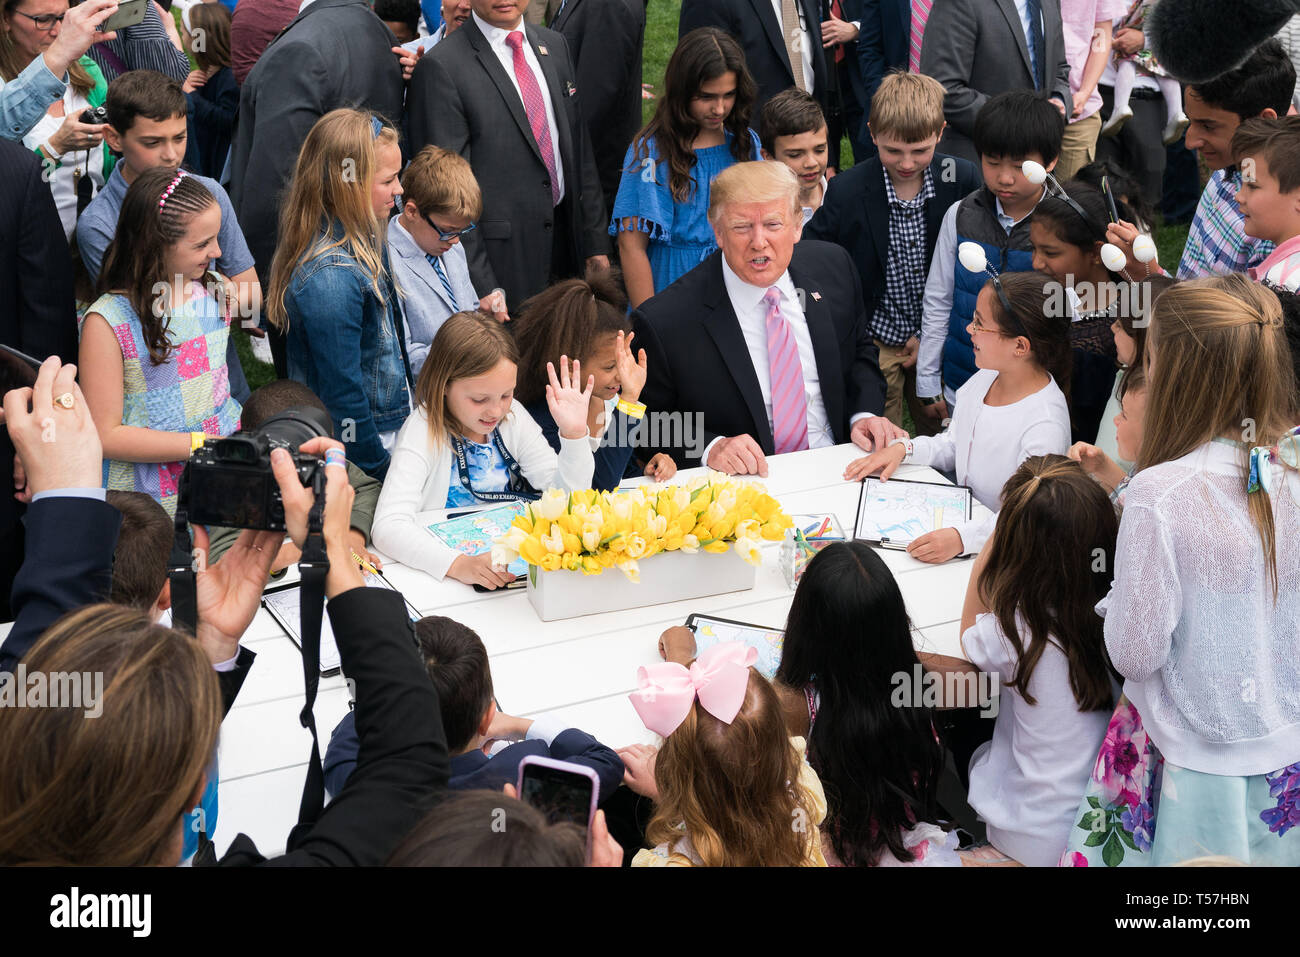 Washington, United States Of America. 22nd Apr, 2019. United States President Donald J. Trump colors with children during the White House Easter Egg Roll at the White House in Washington, DC on April 22, 2019. Credit: Kevin Dietsch/Pool via CNP | usage worldwide Credit: dpa/Alamy Live News - Stock Image